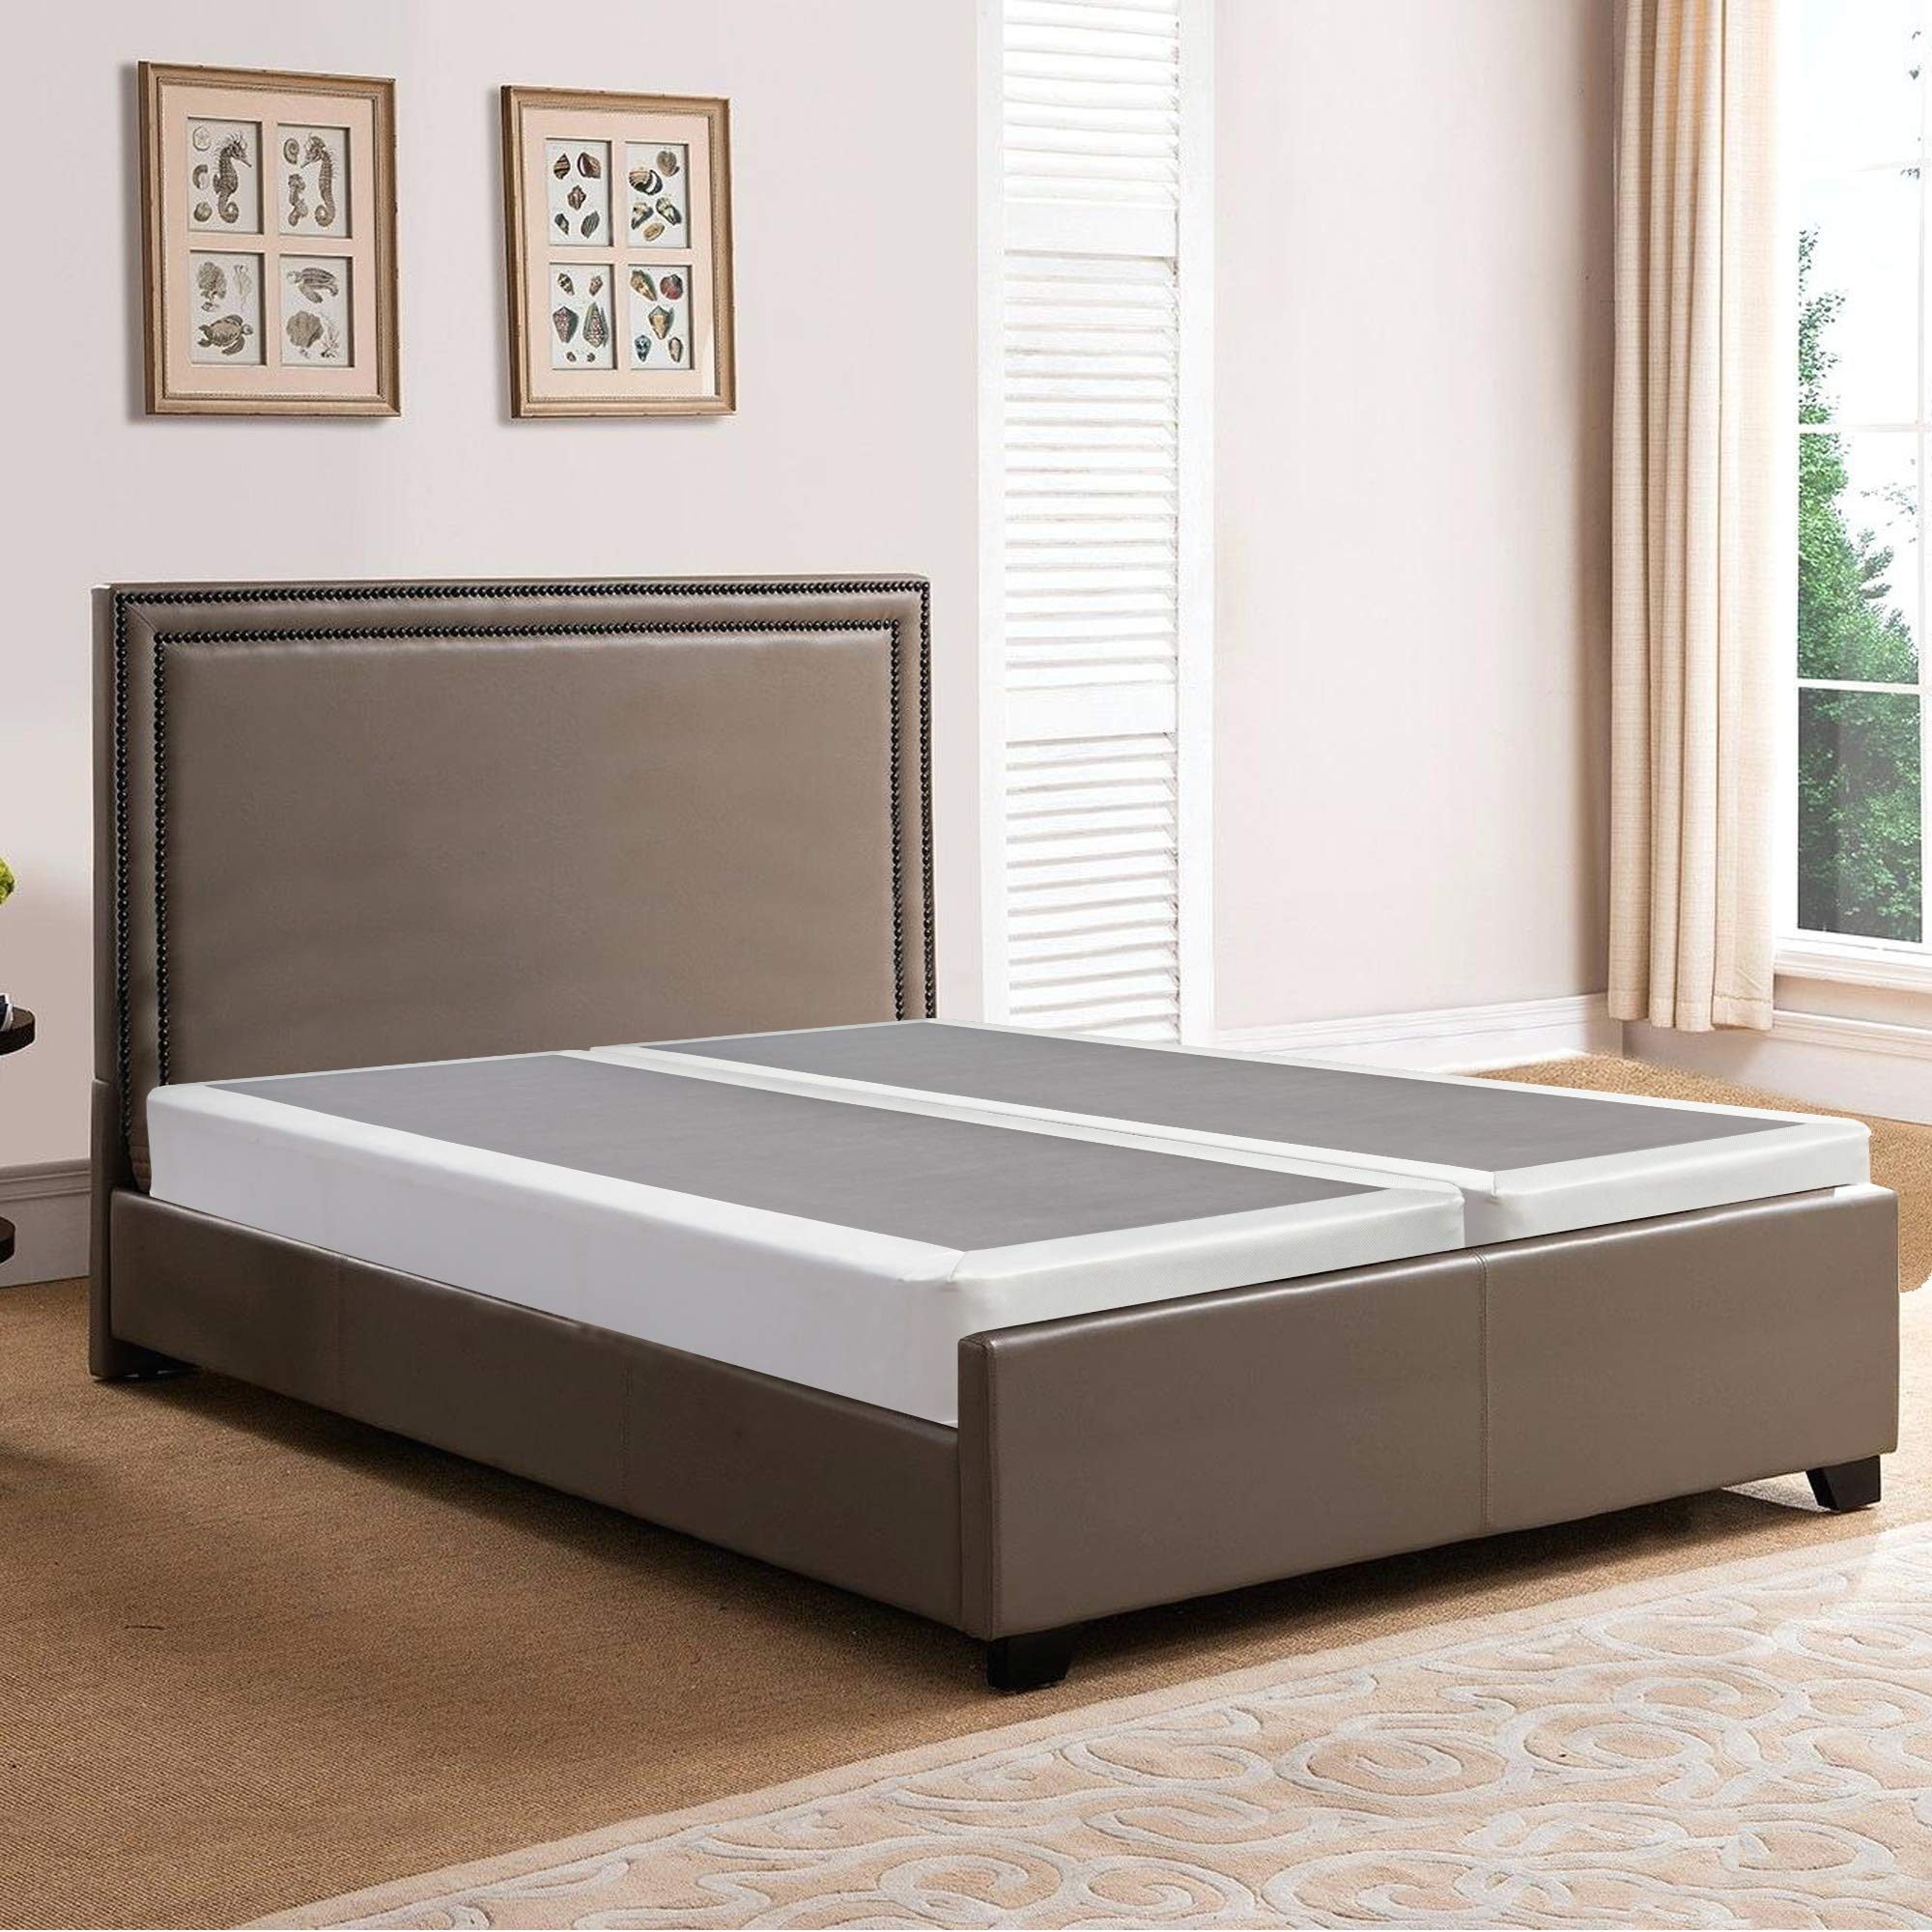 Spring Solution, 8-inch Fully Assembled Split Box Spring/Foundation for Mattress, Queen Size